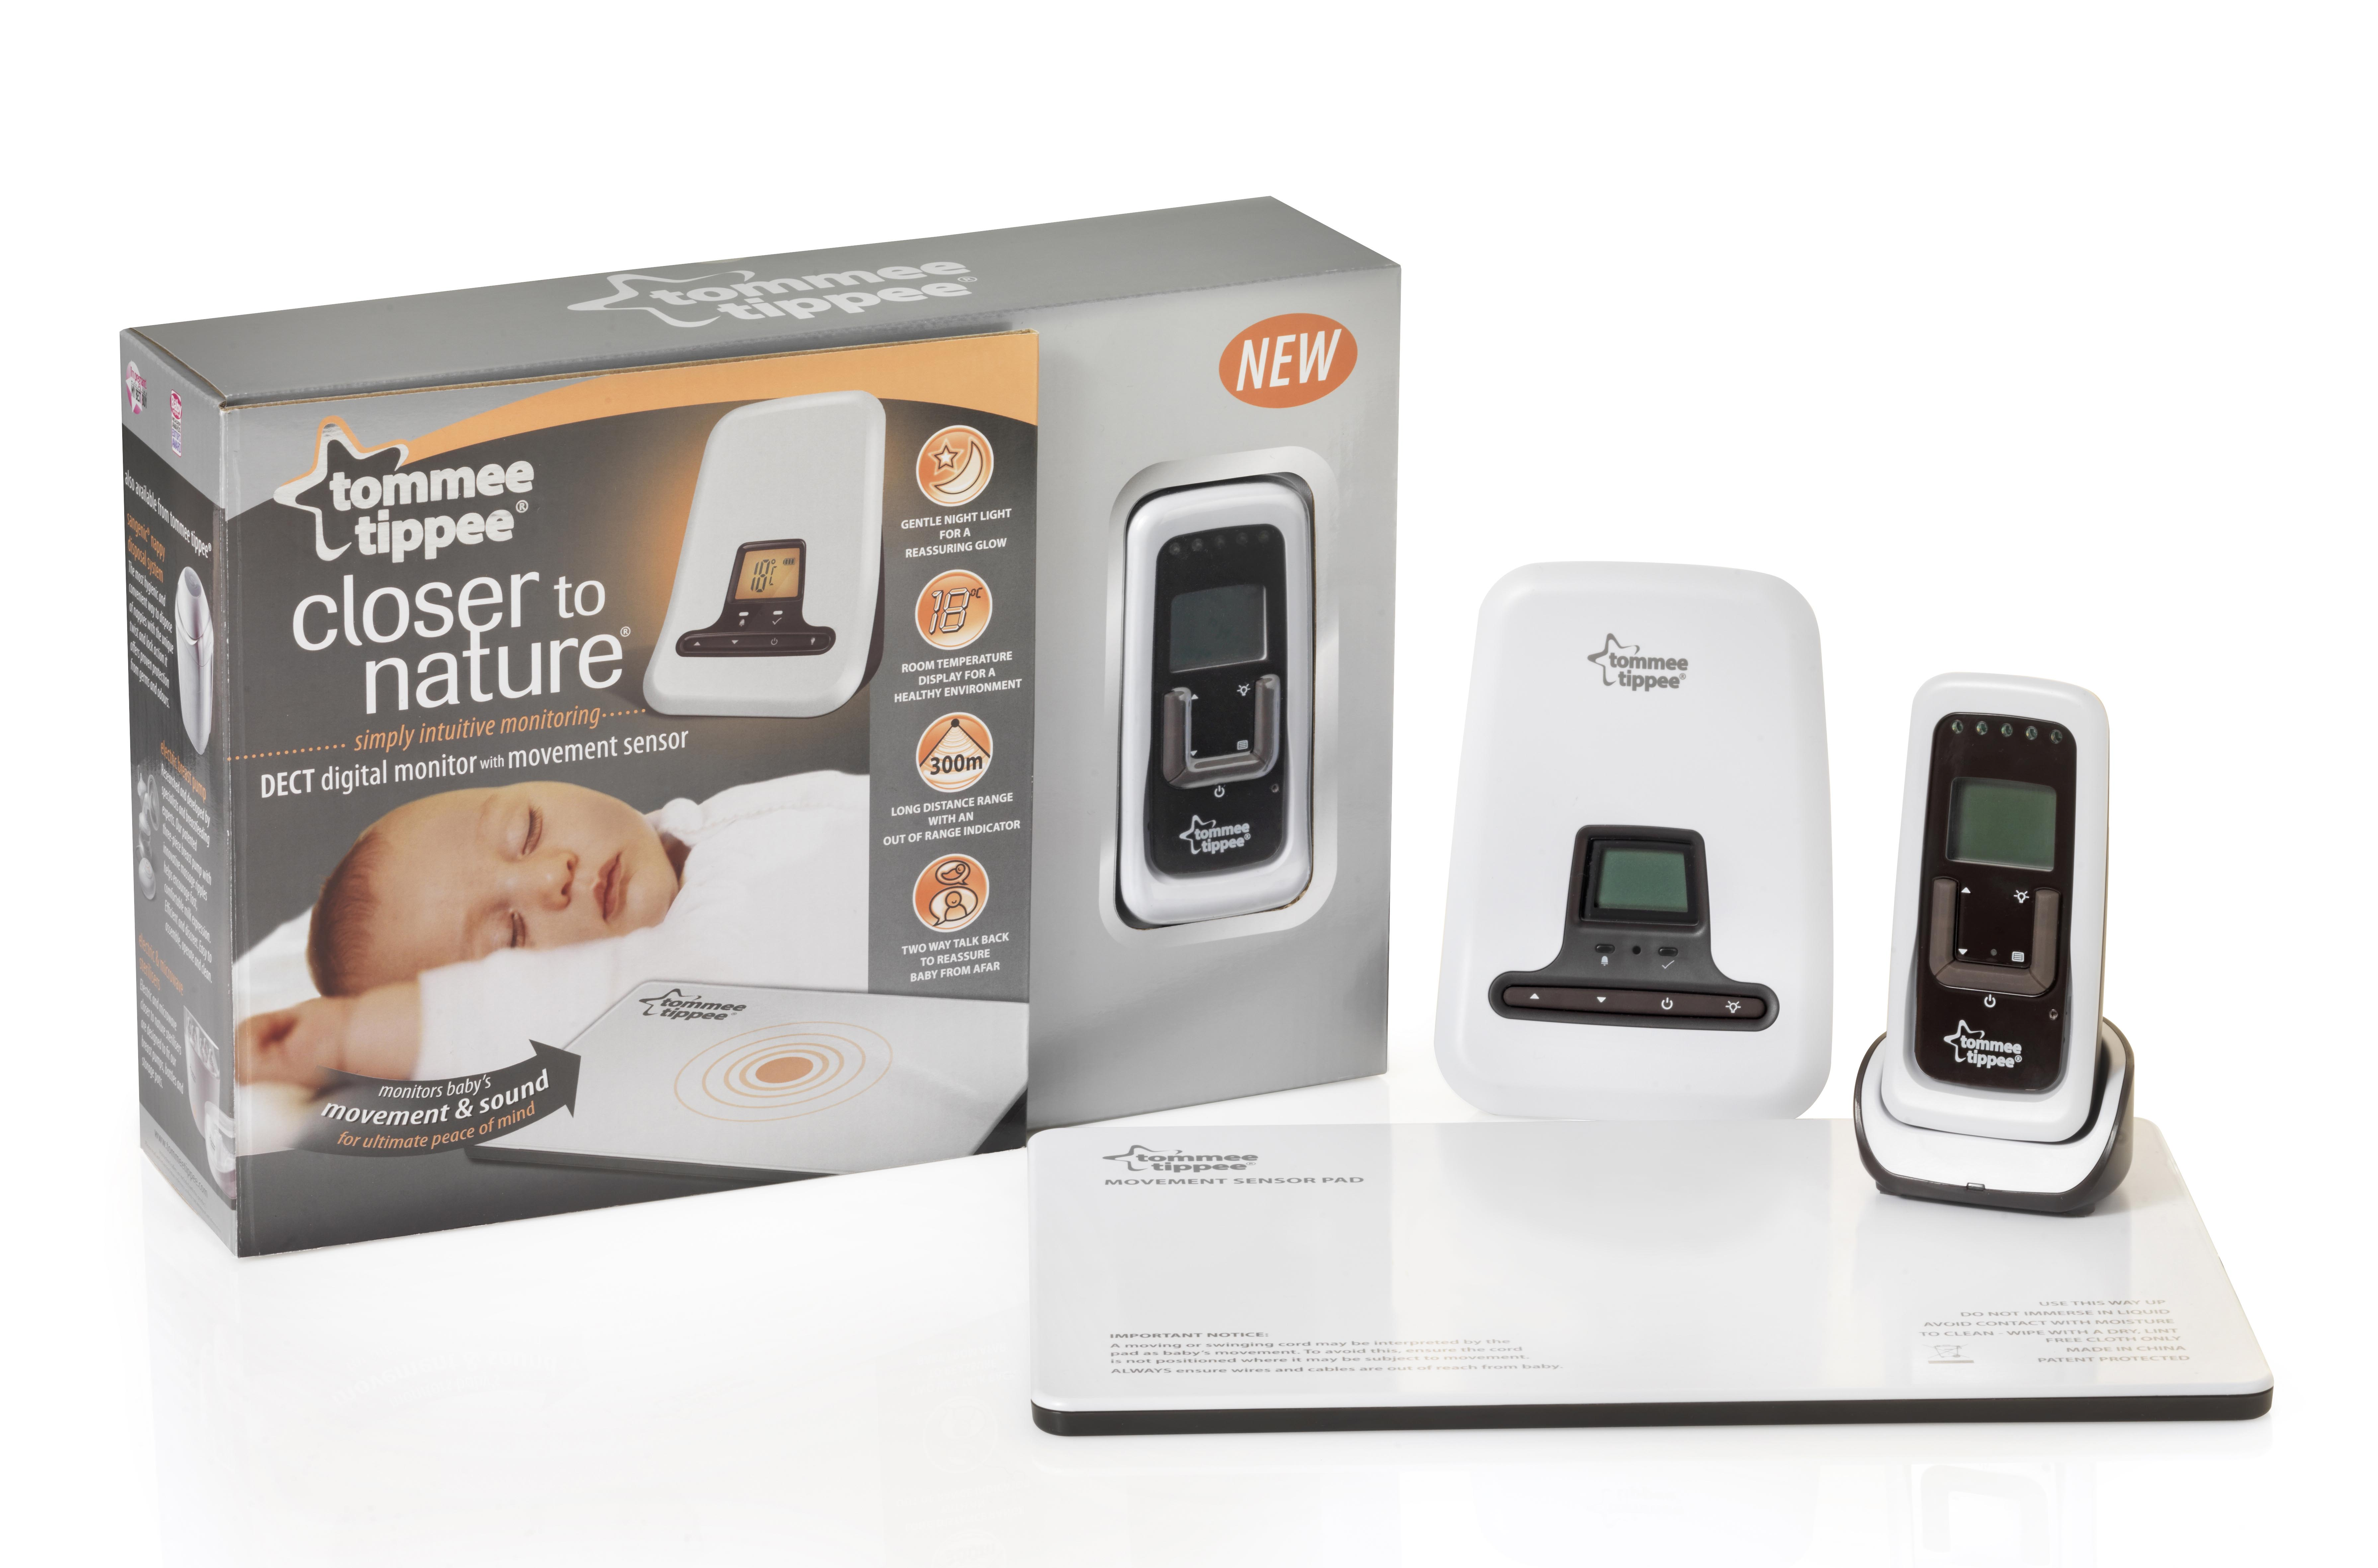 Tommee Tippee DECT Digital Movement & Sound Monitor